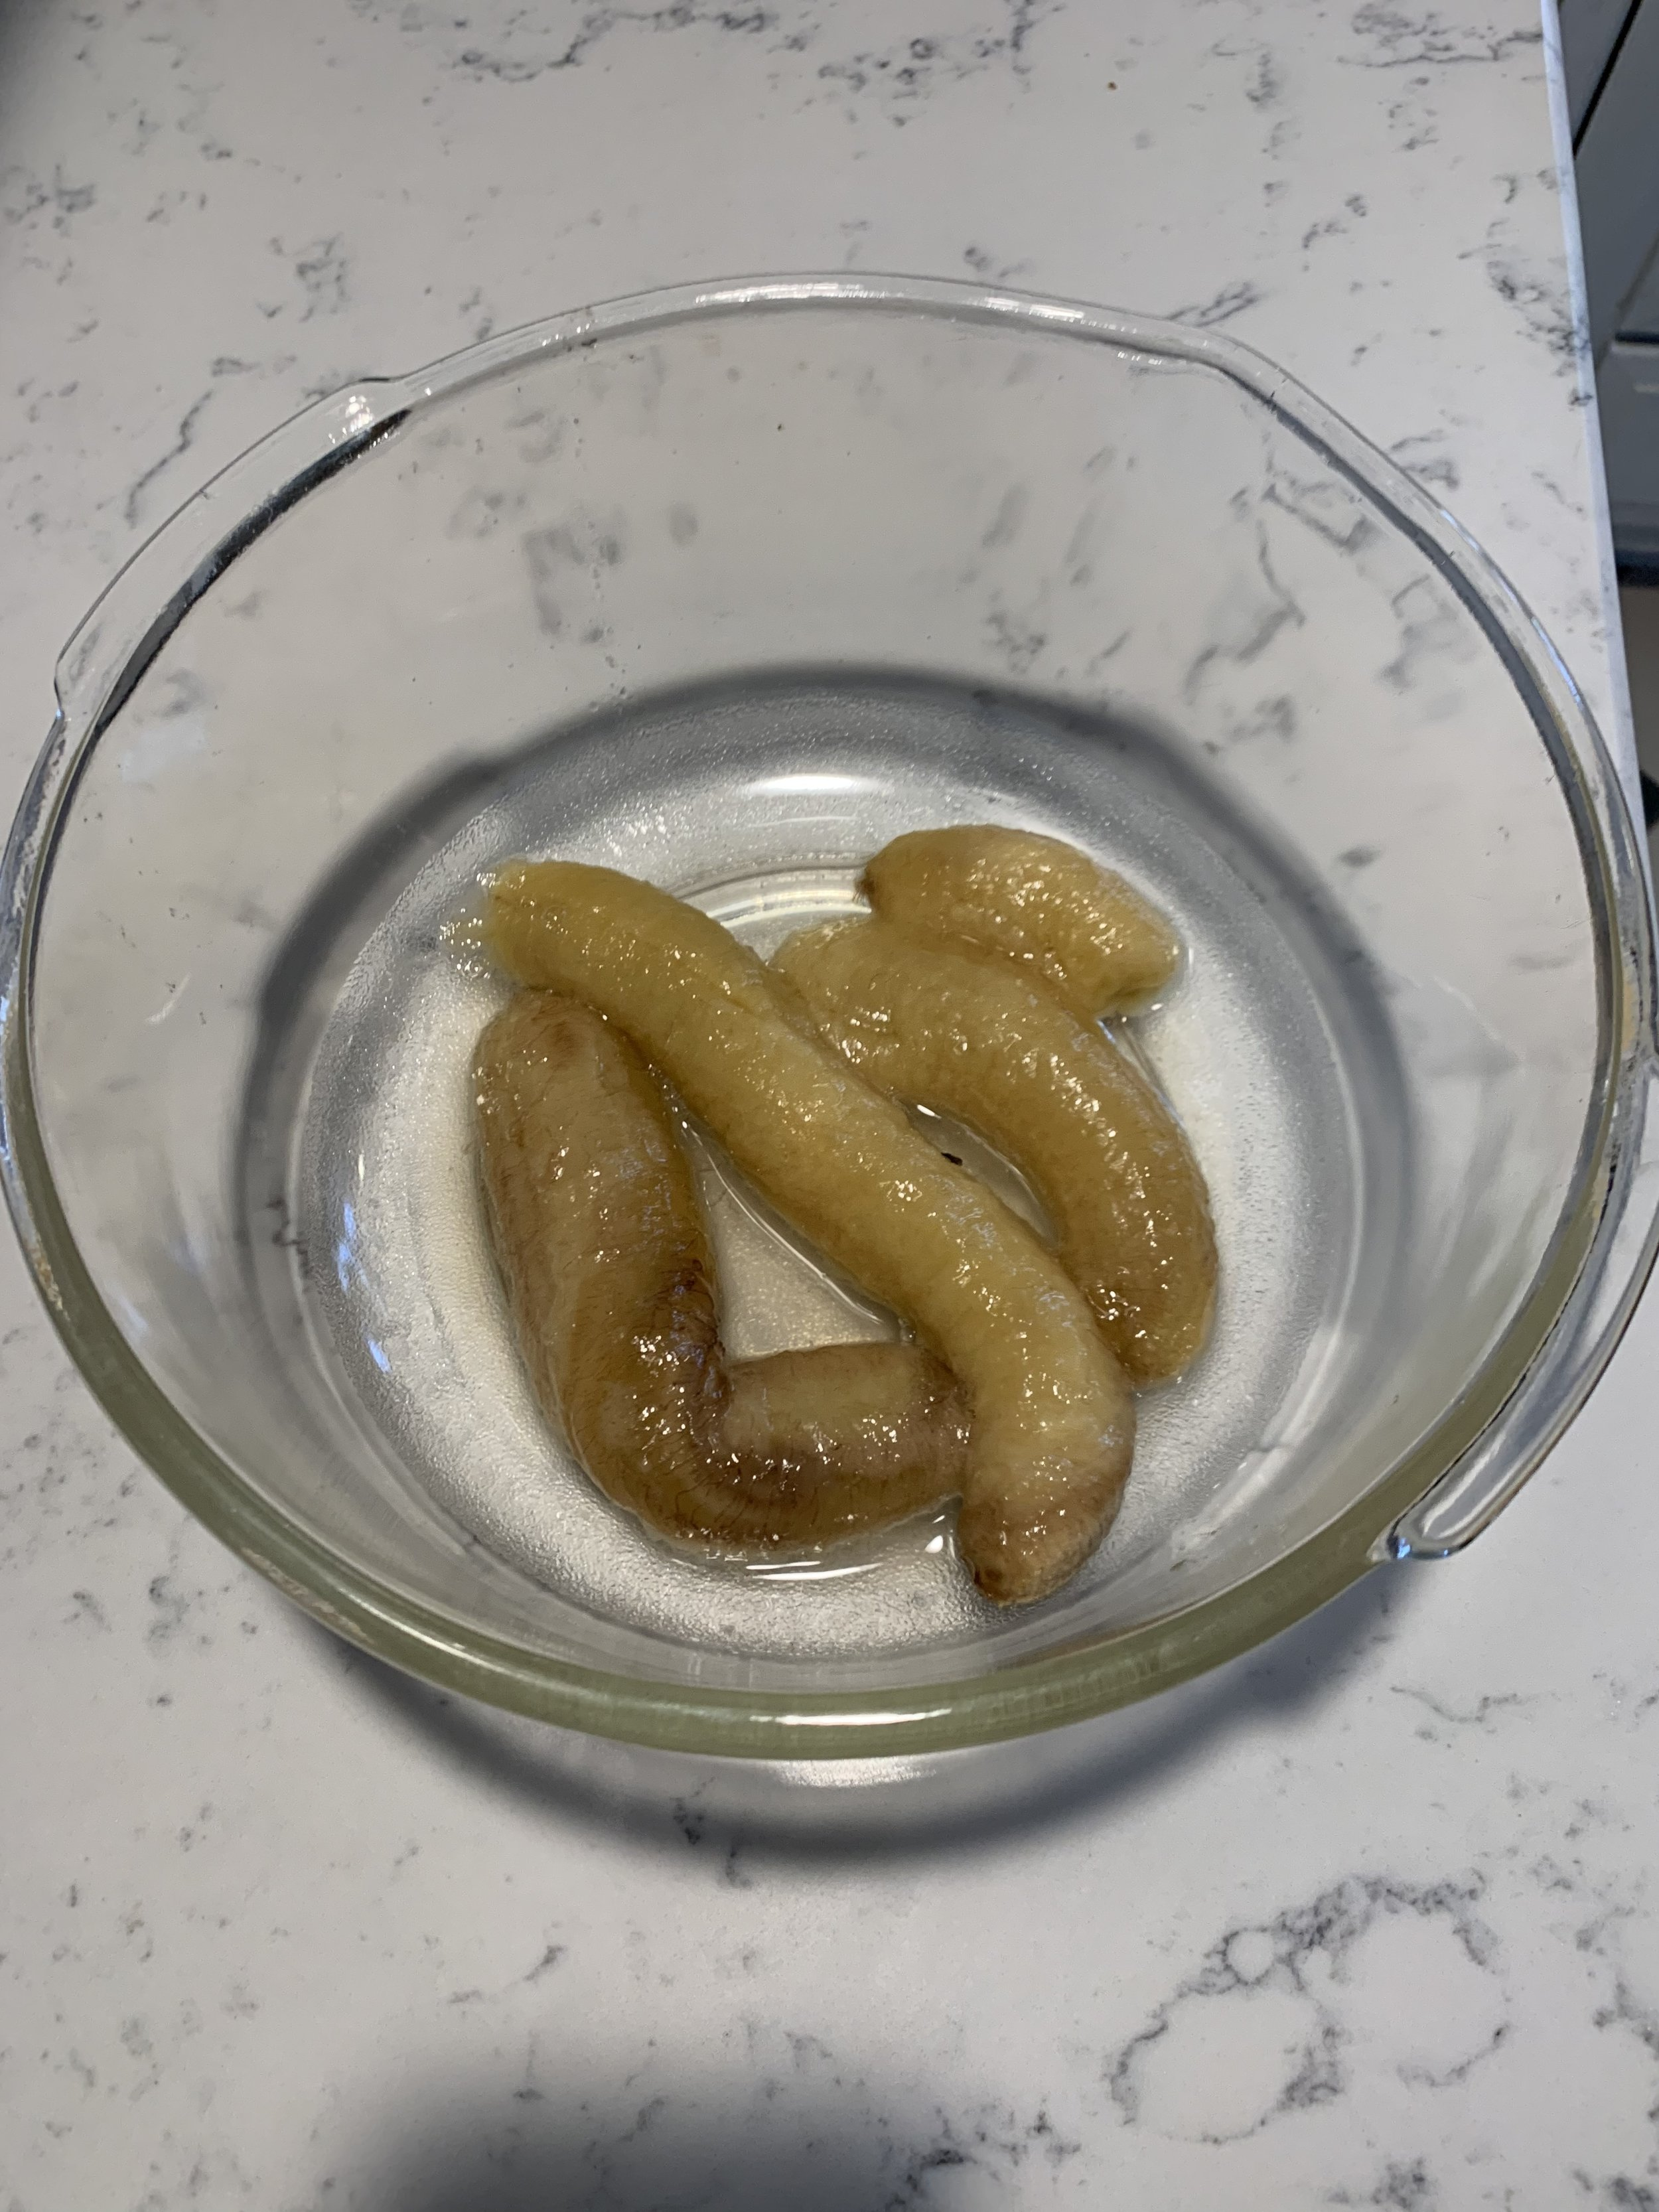 Slimy looking bananas from the freezer. Use 3 very ripe ones with brown spots if you're not using